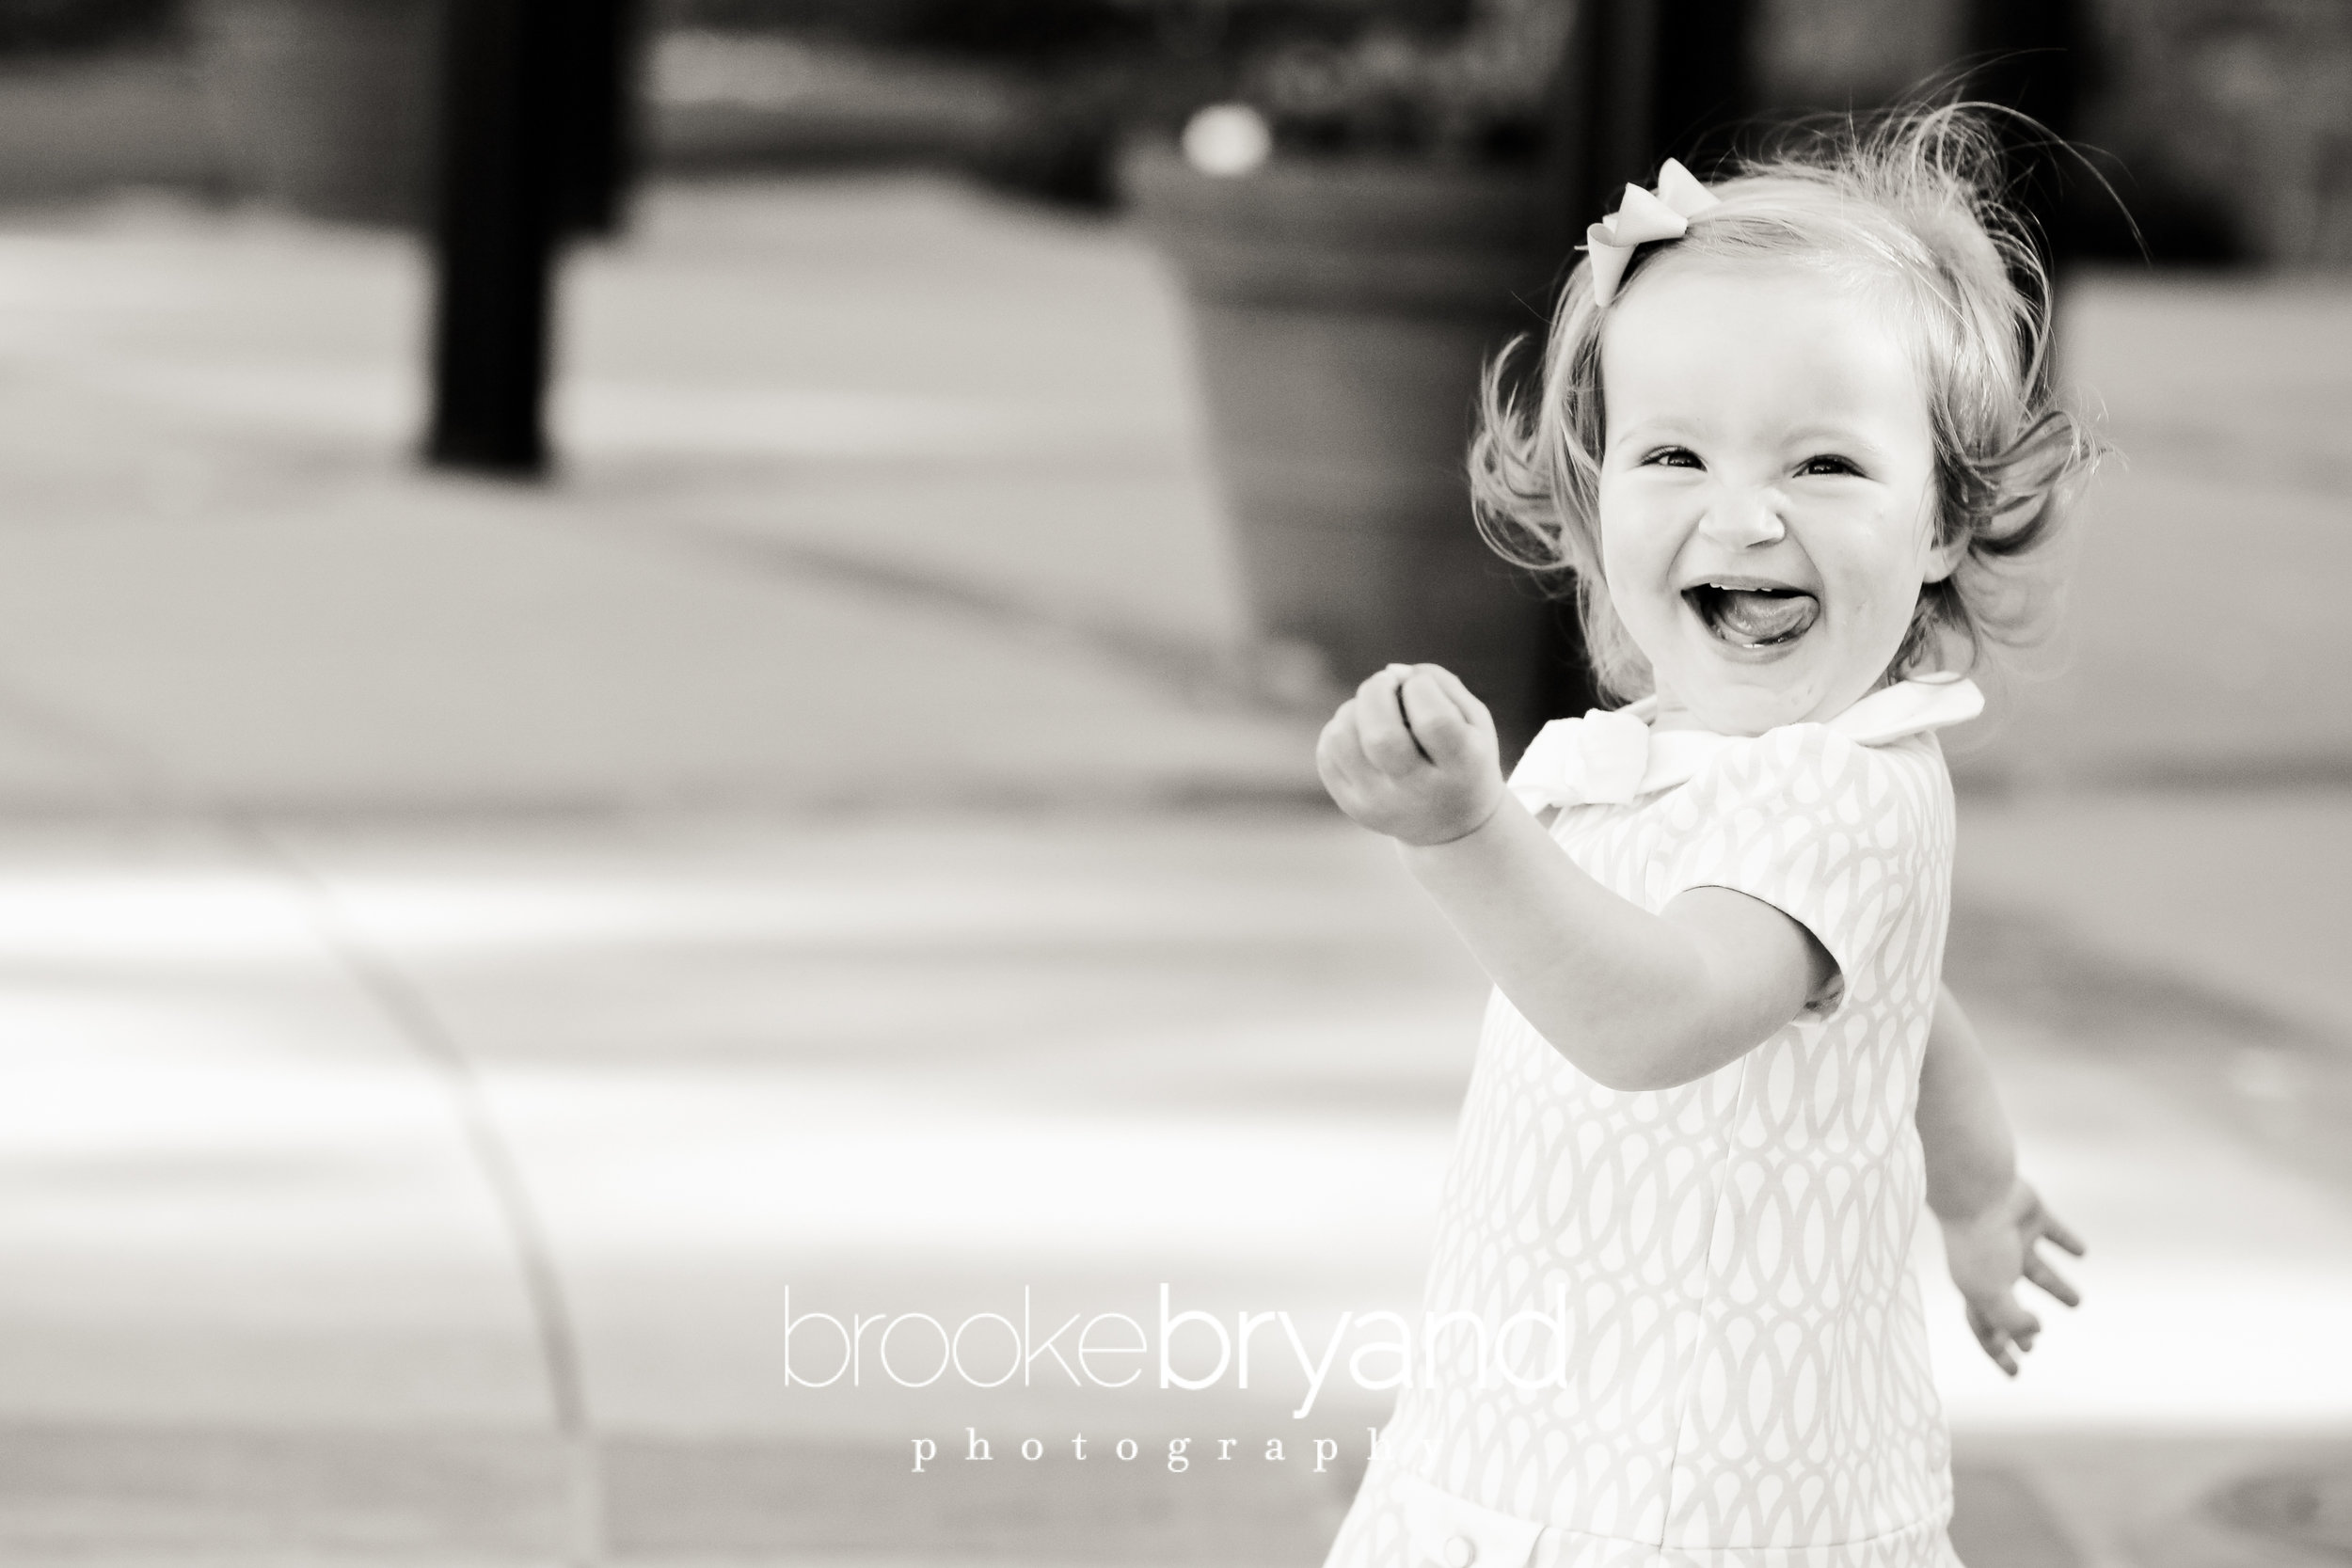 brooke-bryand-photography-san-francisco-family-photos-presidio-letterman-photos-BBP_4991.jpg